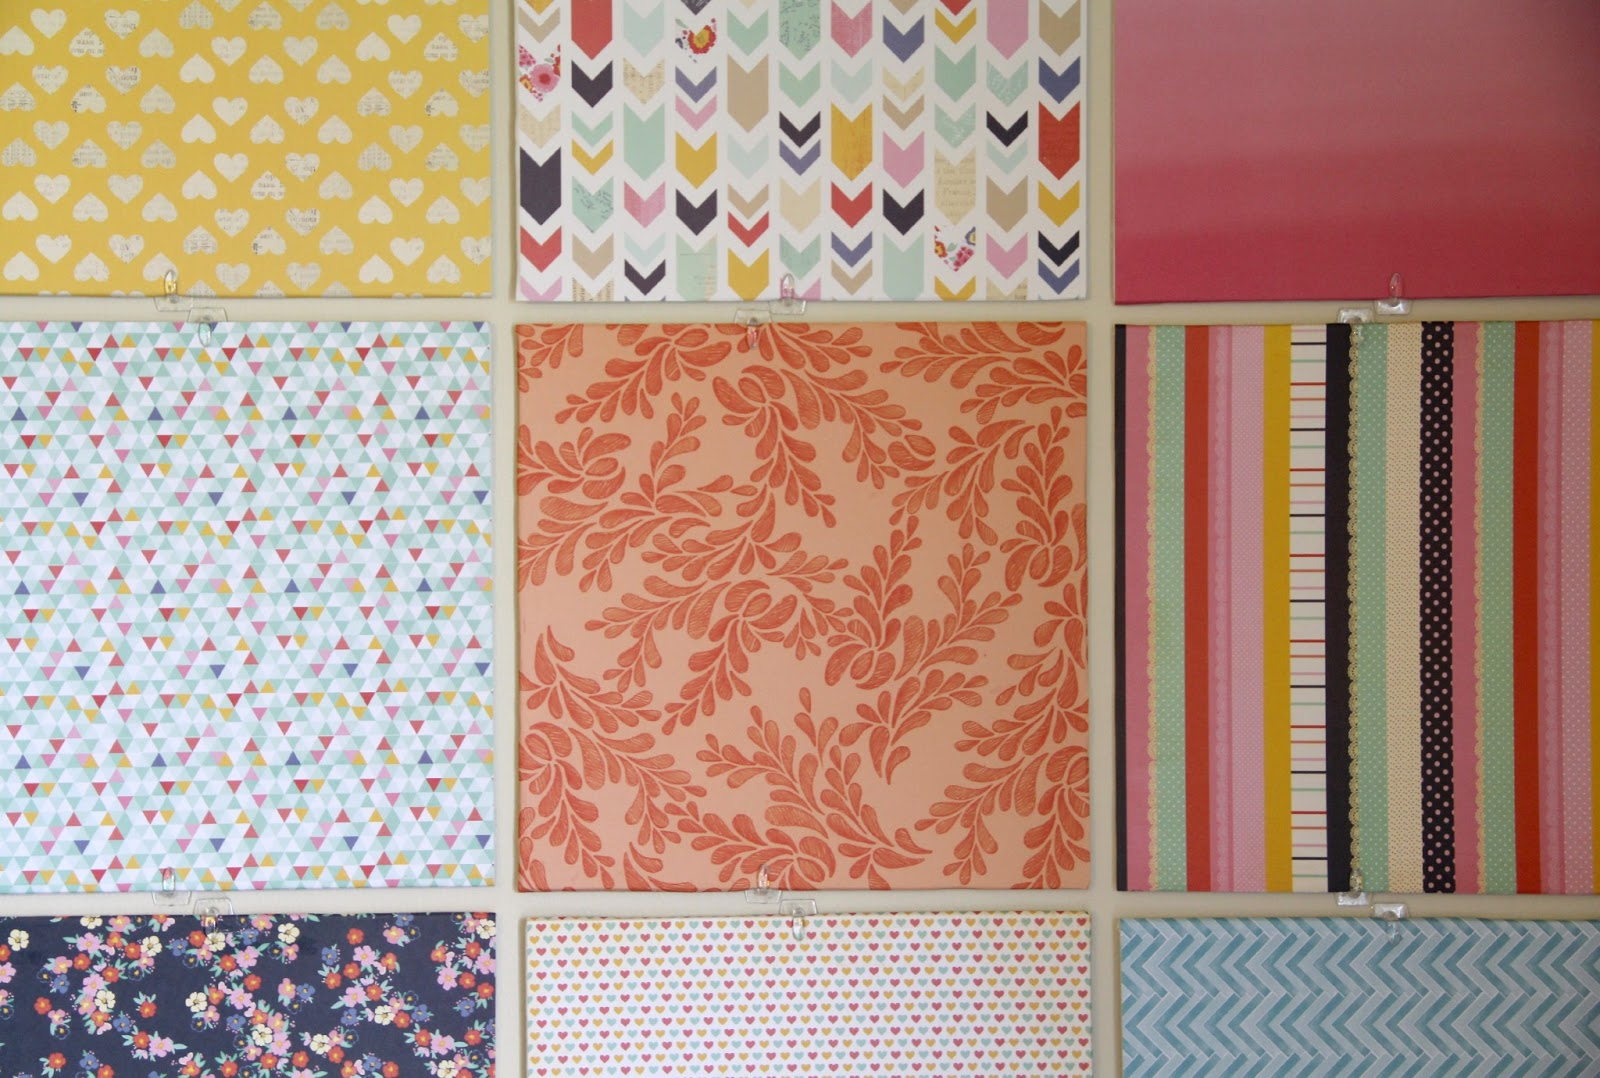 How to scrapbook canvas - Choose The Scrapbook Papers According To The Color Theme Of Your Room They Don T Have To Match